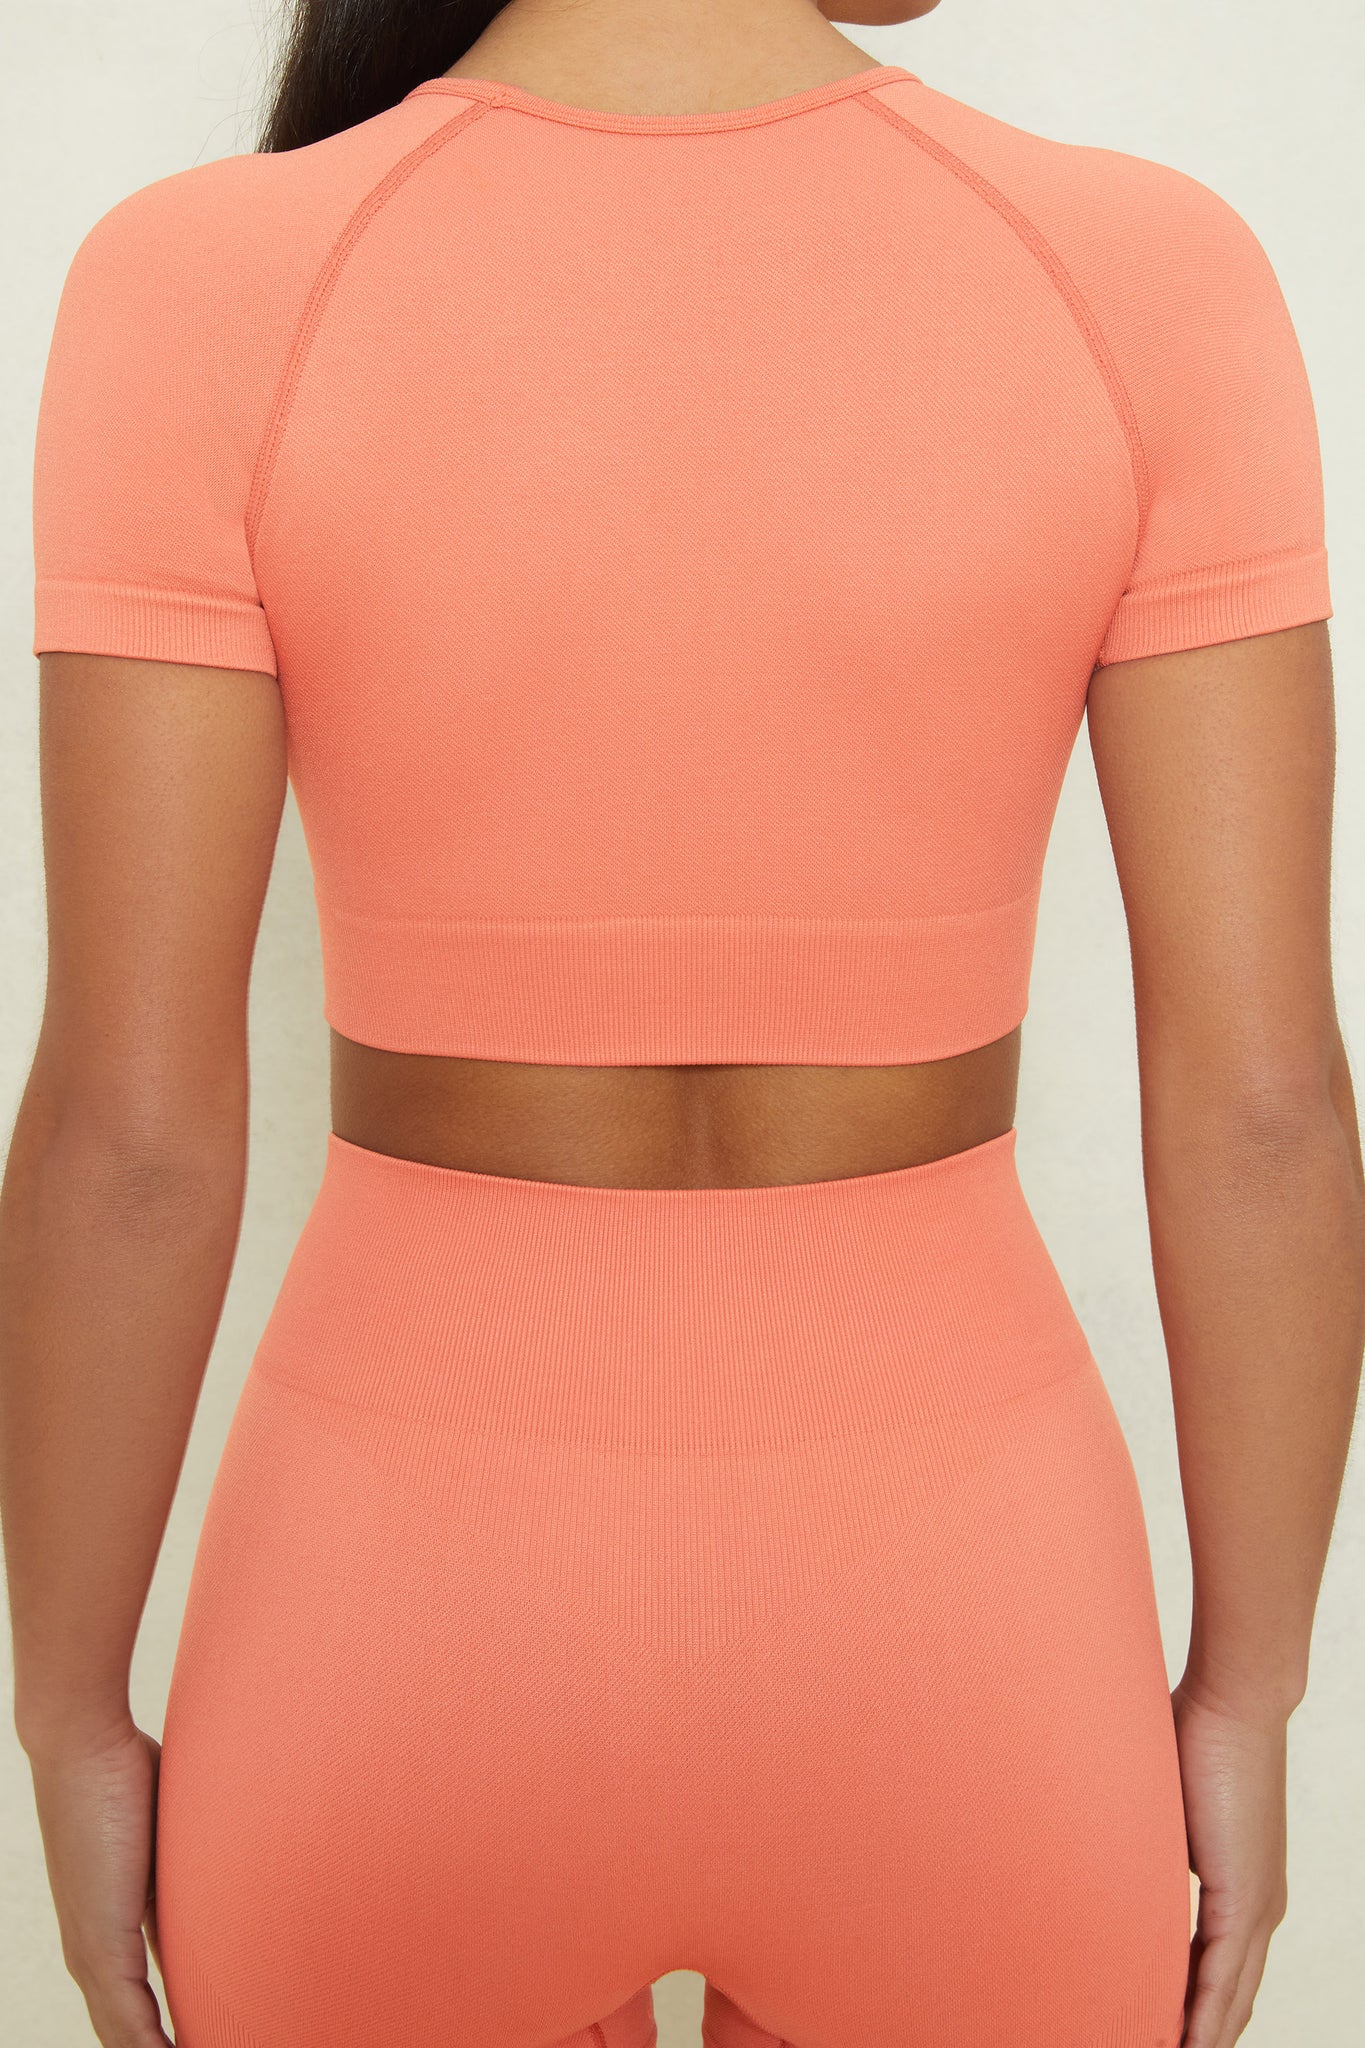 Control - Crop Top in Terracotta